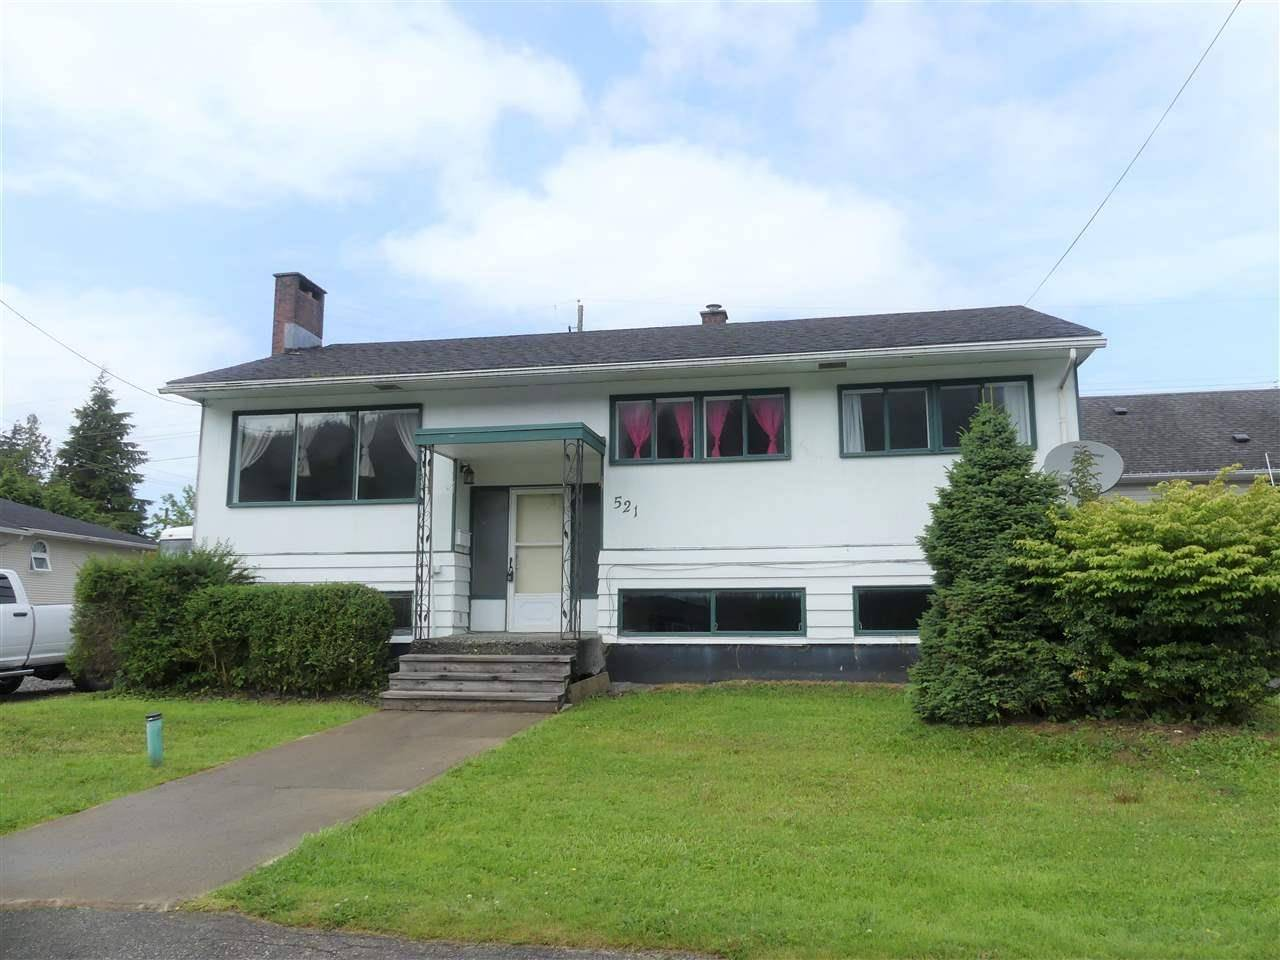 House for sale at 521 11 Ave E Prince Rupert British Columbia - MLS: R2390430